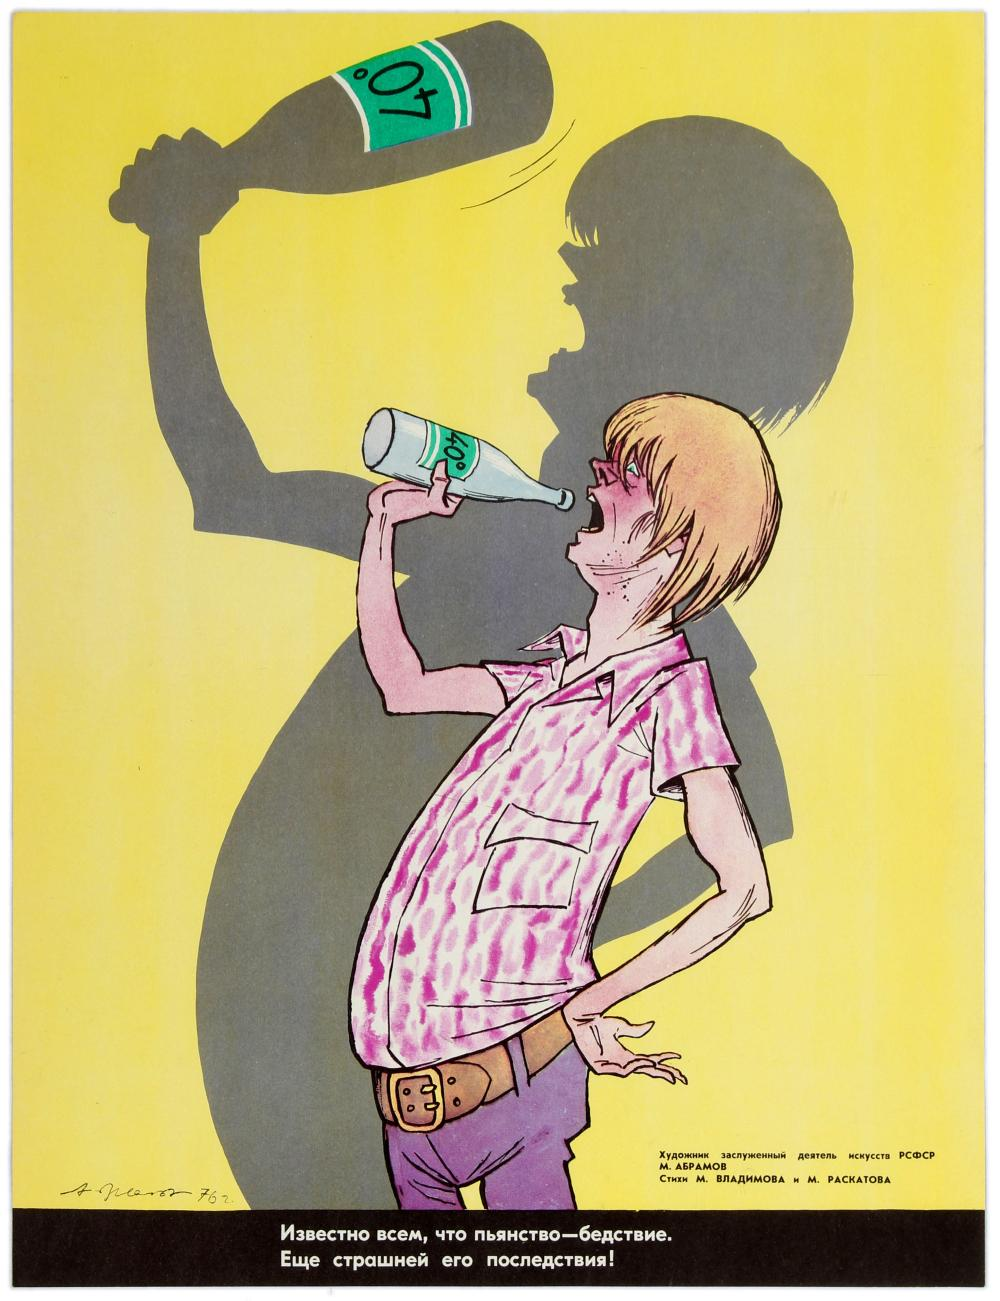 Anti-alcohol poster from the 70s.